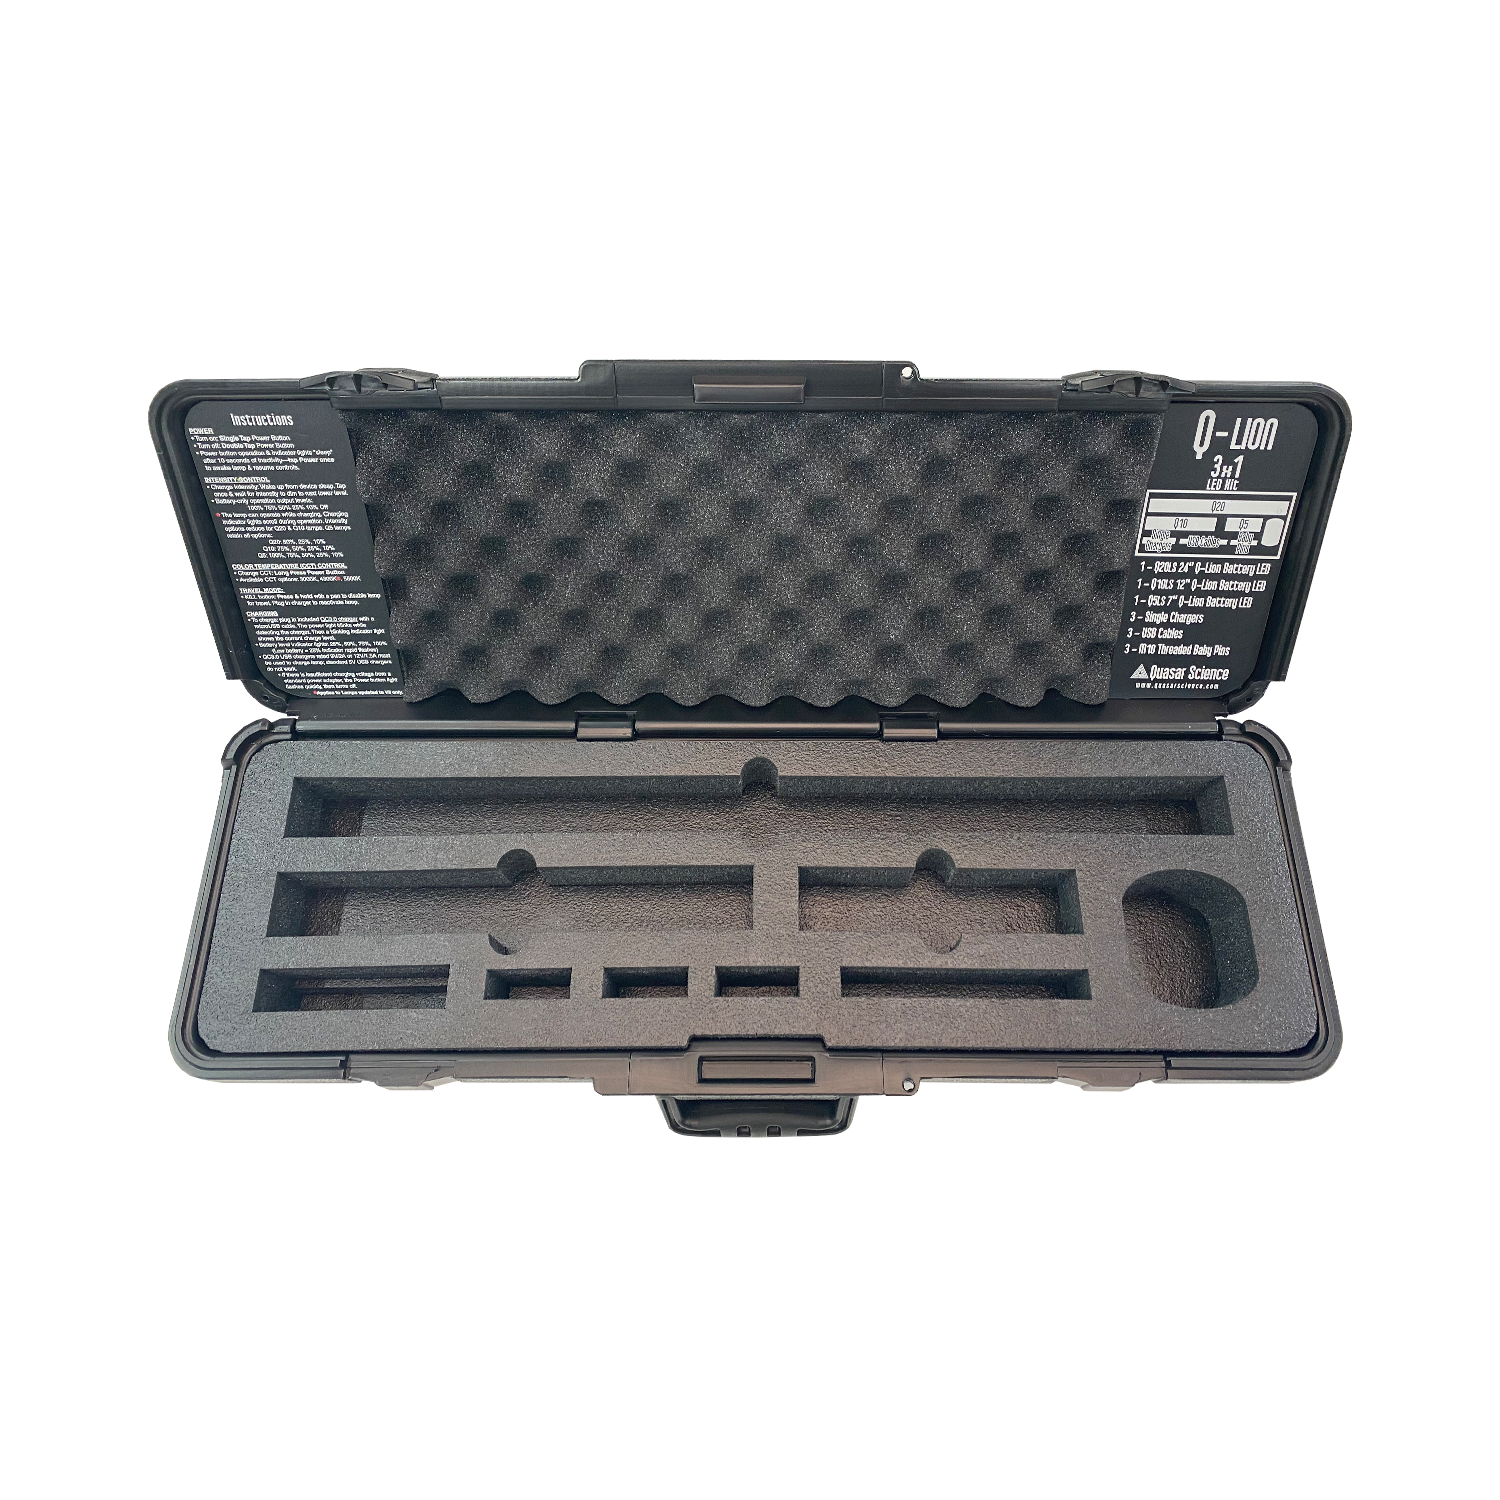 Q-Lion 3x1 Case and Foam [USED]